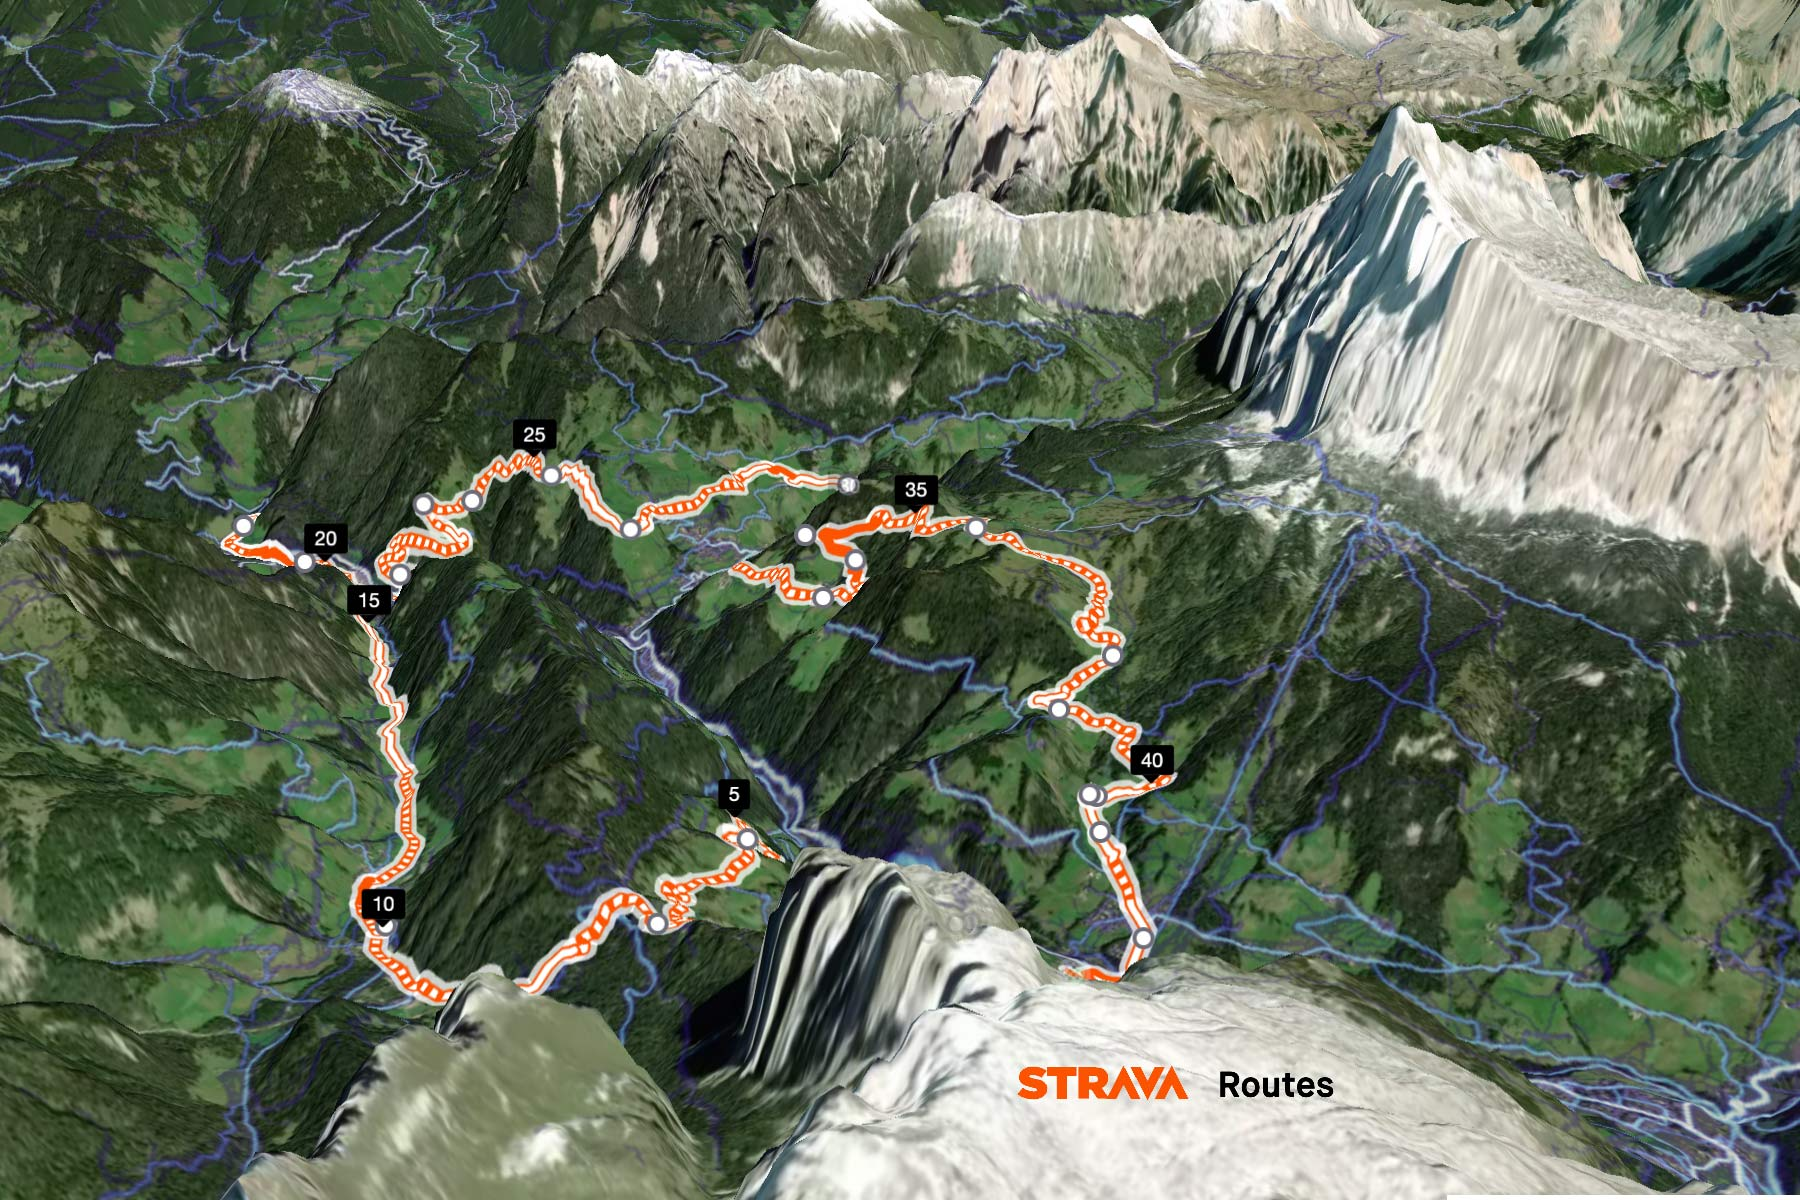 Strava 3D Terrain Route Builder view for subscribers, Dolomites